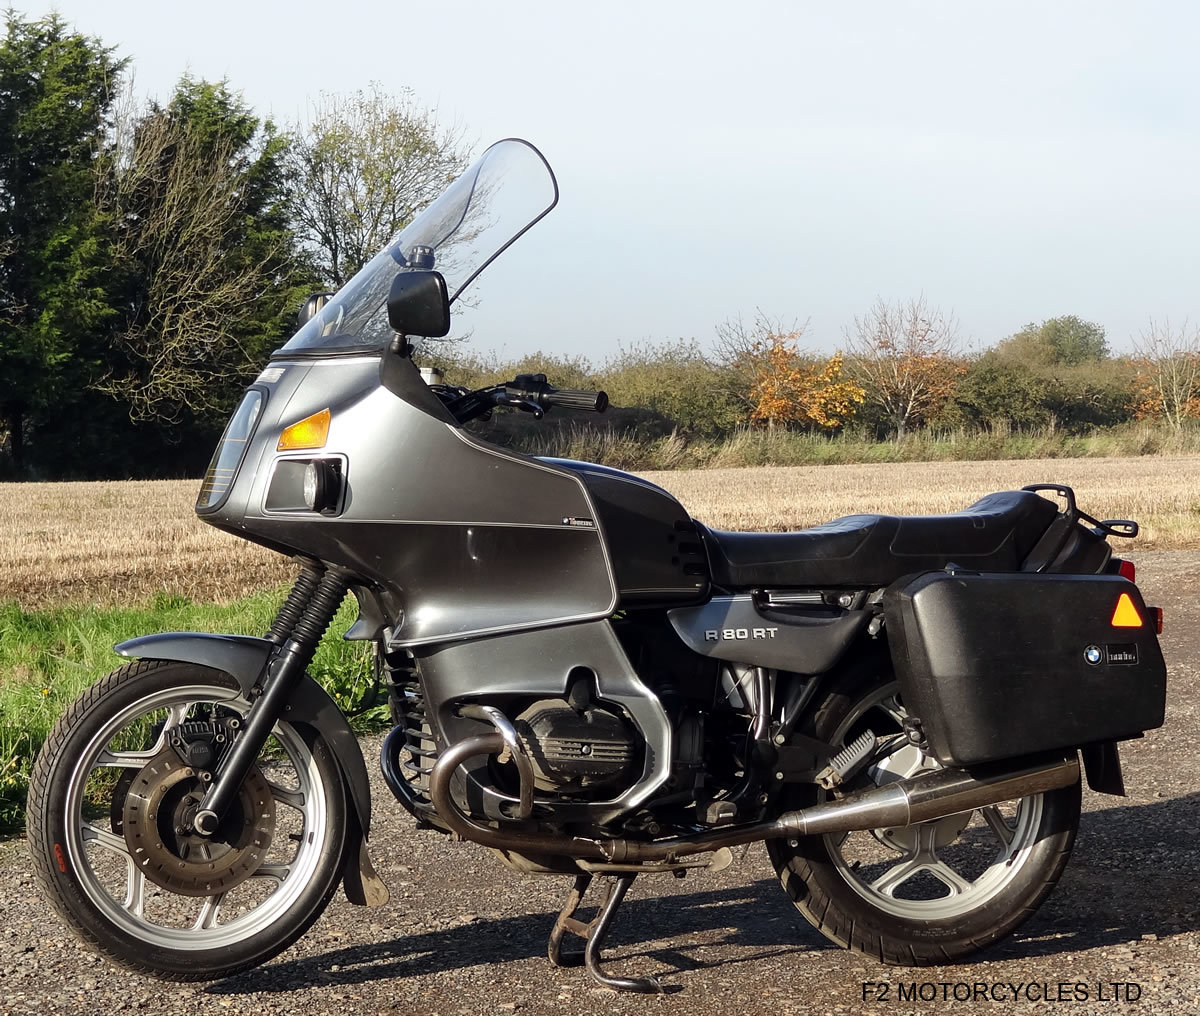 1989 BMW R80RT 1 owner, long MOT, serviced and ready to ride For Sale (picture 5 of 6)